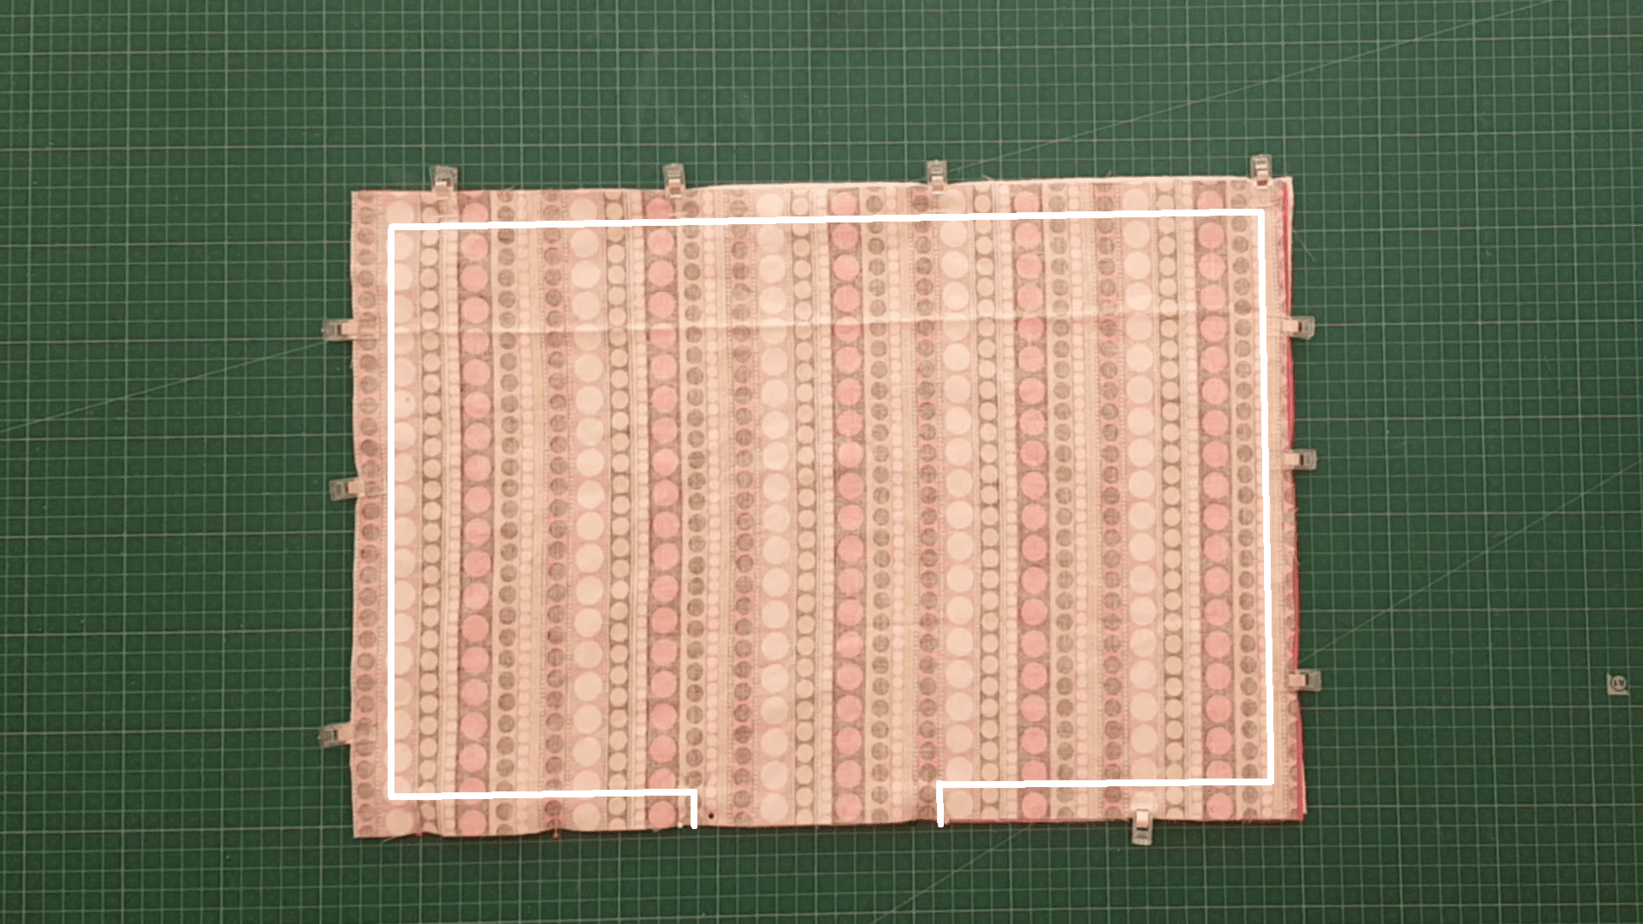 Placemat fabric with line drawn for how to sew the layers together and leave an opening.